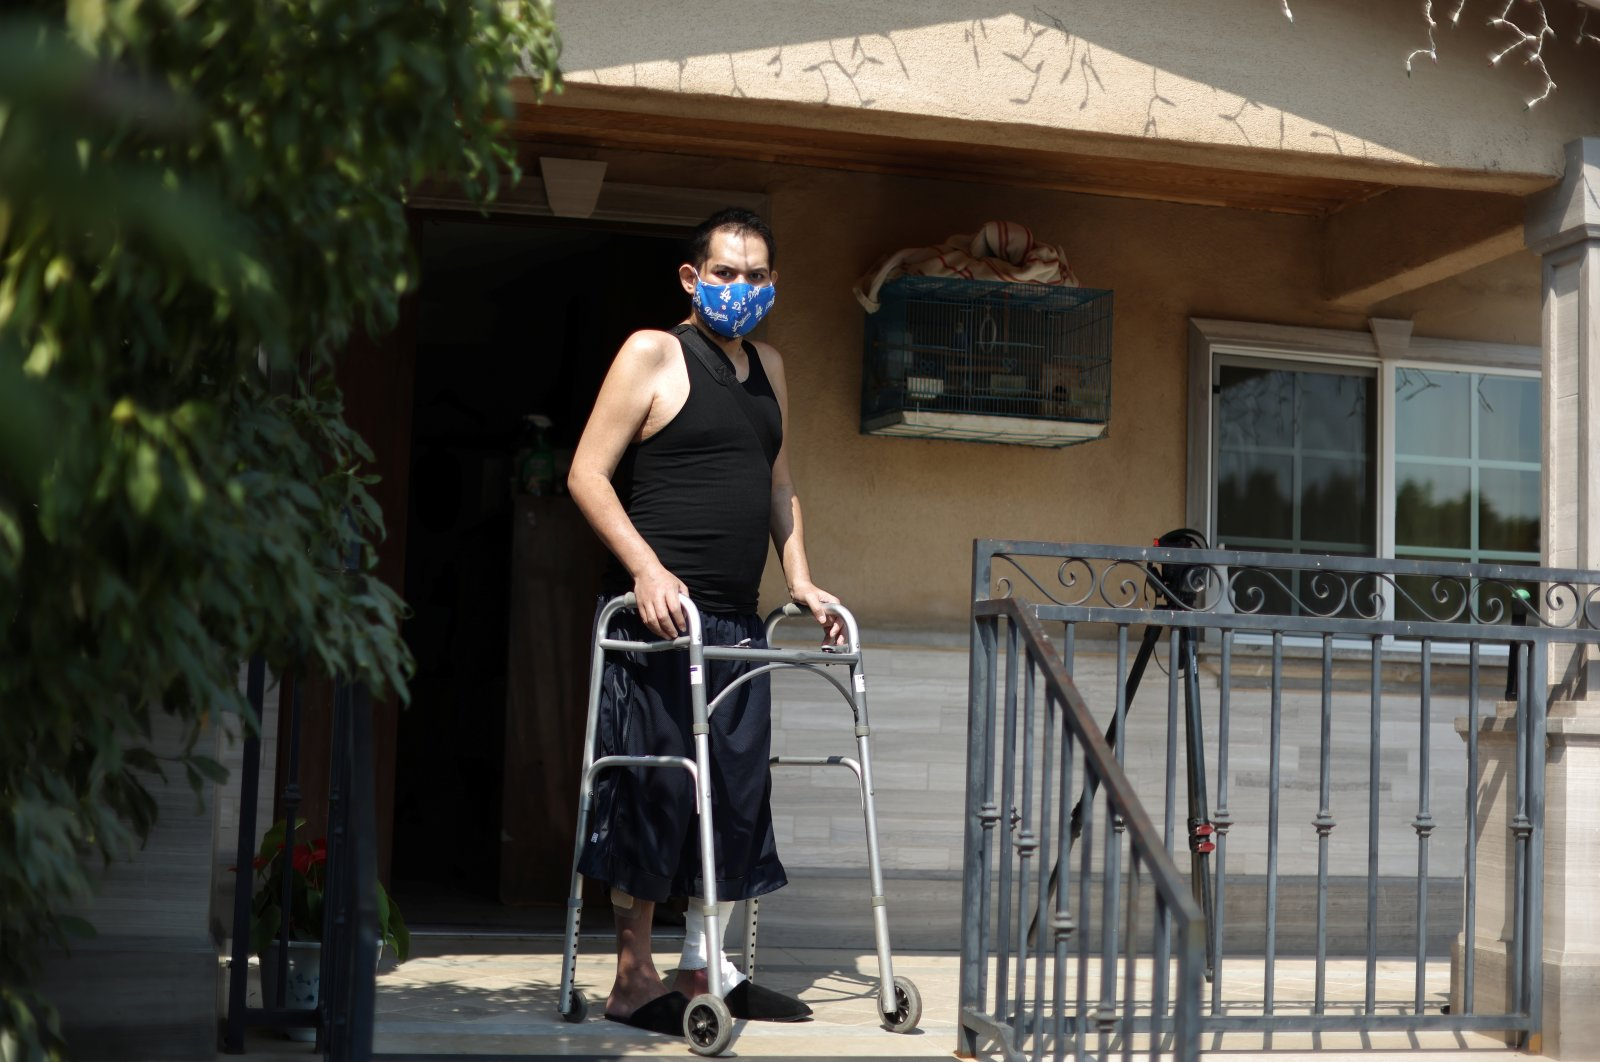 Francisco Garcia, 31, who spent almost four months in the hospital with COVID-19, recovers at his home in Los Angeles, California, U.S., Aug. 19, 2020. (REUTERS Photo)